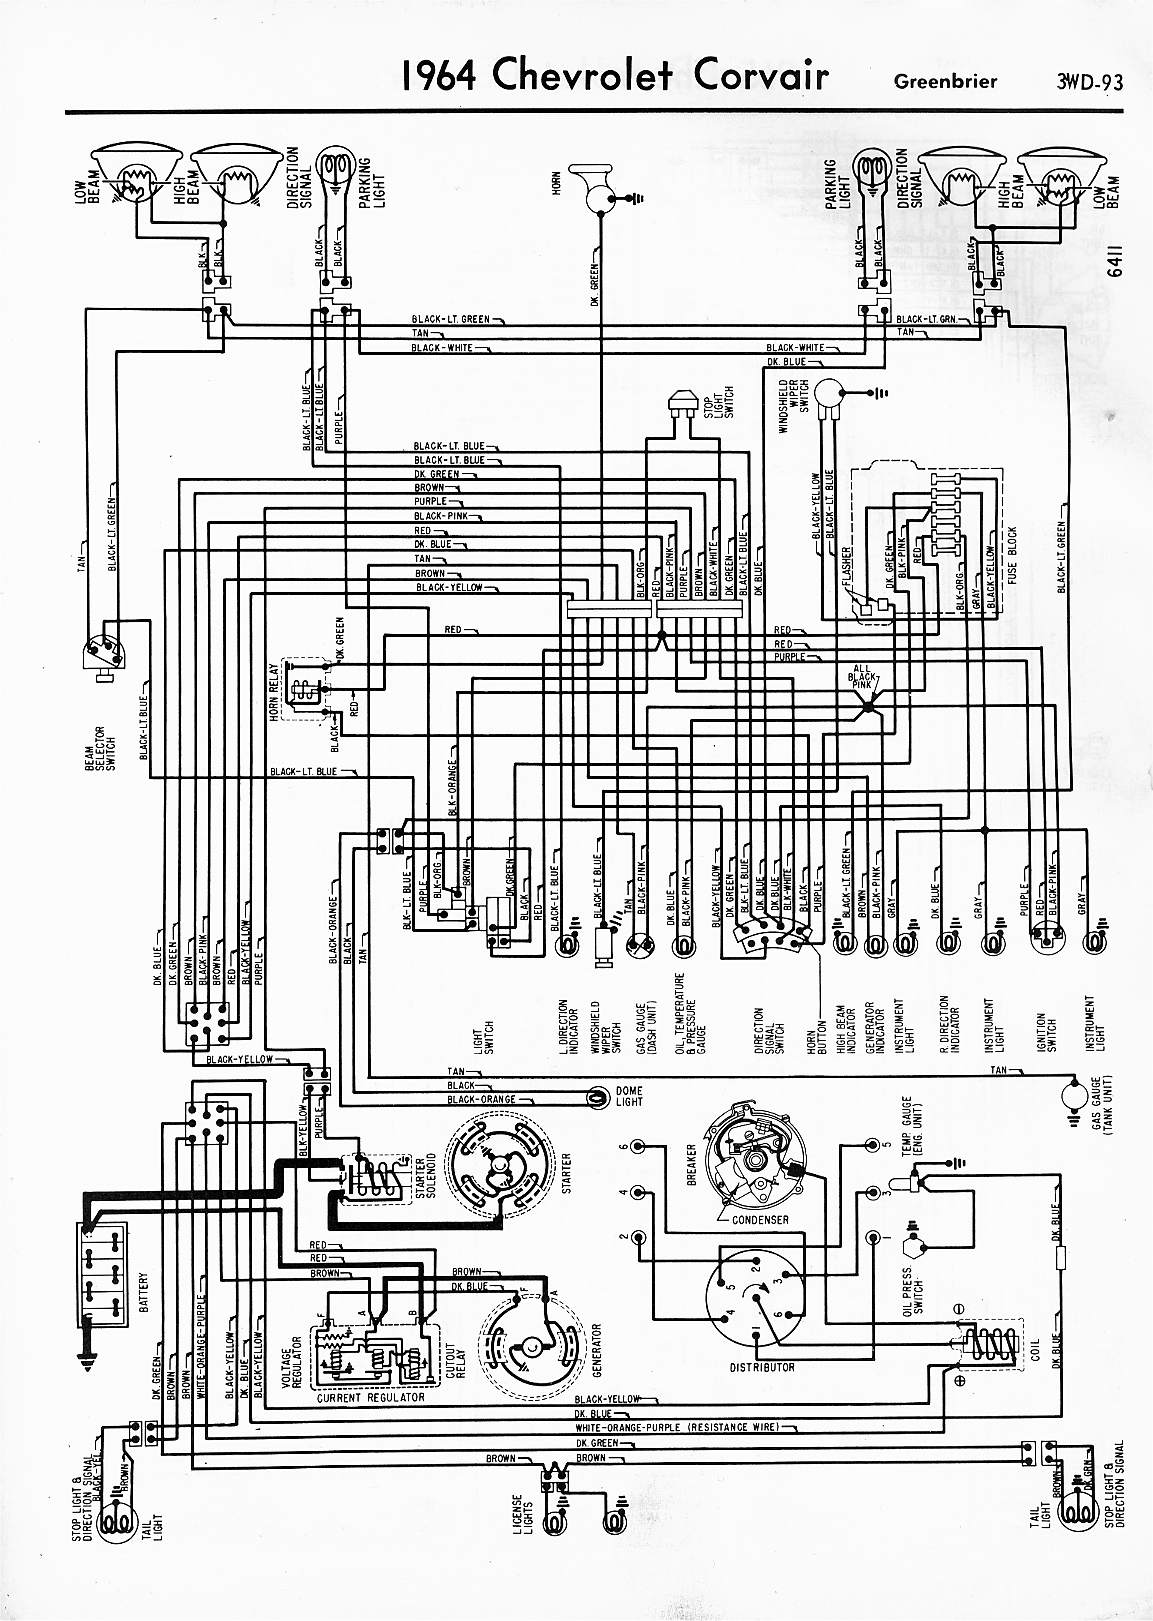 wiring diagram 1964 chevy corvette schematics wiring diagrams rh wine174 com